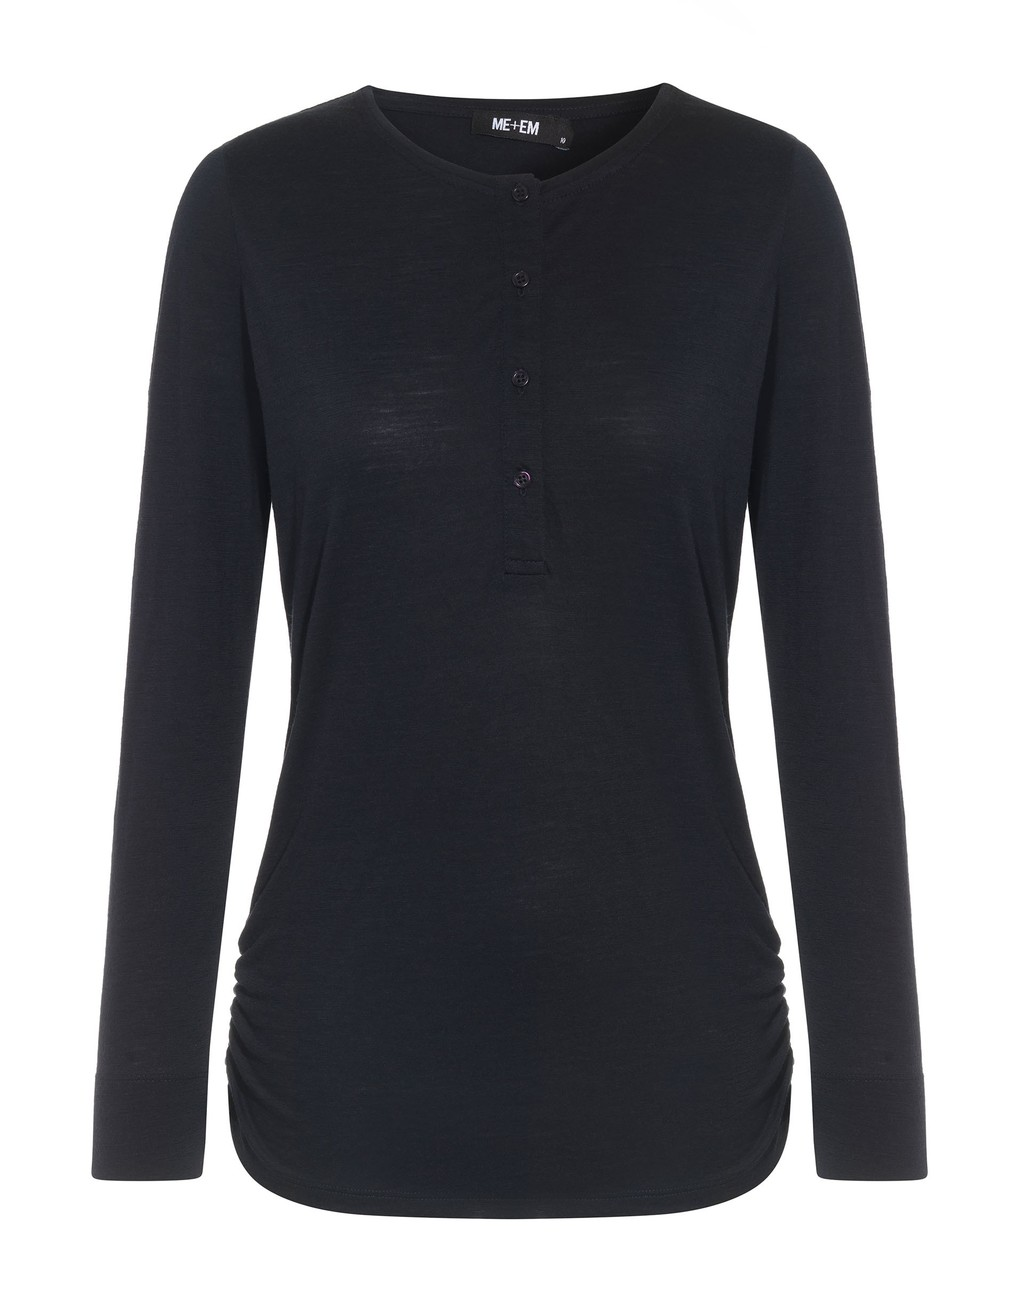 Luxe Henley Tee Navy - pattern: plain; predominant colour: black; occasions: casual; length: standard; style: top; fibres: wool - 100%; fit: body skimming; neckline: crew; sleeve length: long sleeve; sleeve style: standard; pattern type: fabric; texture group: jersey - stretchy/drapey; wardrobe: basic; season: a/w 2016